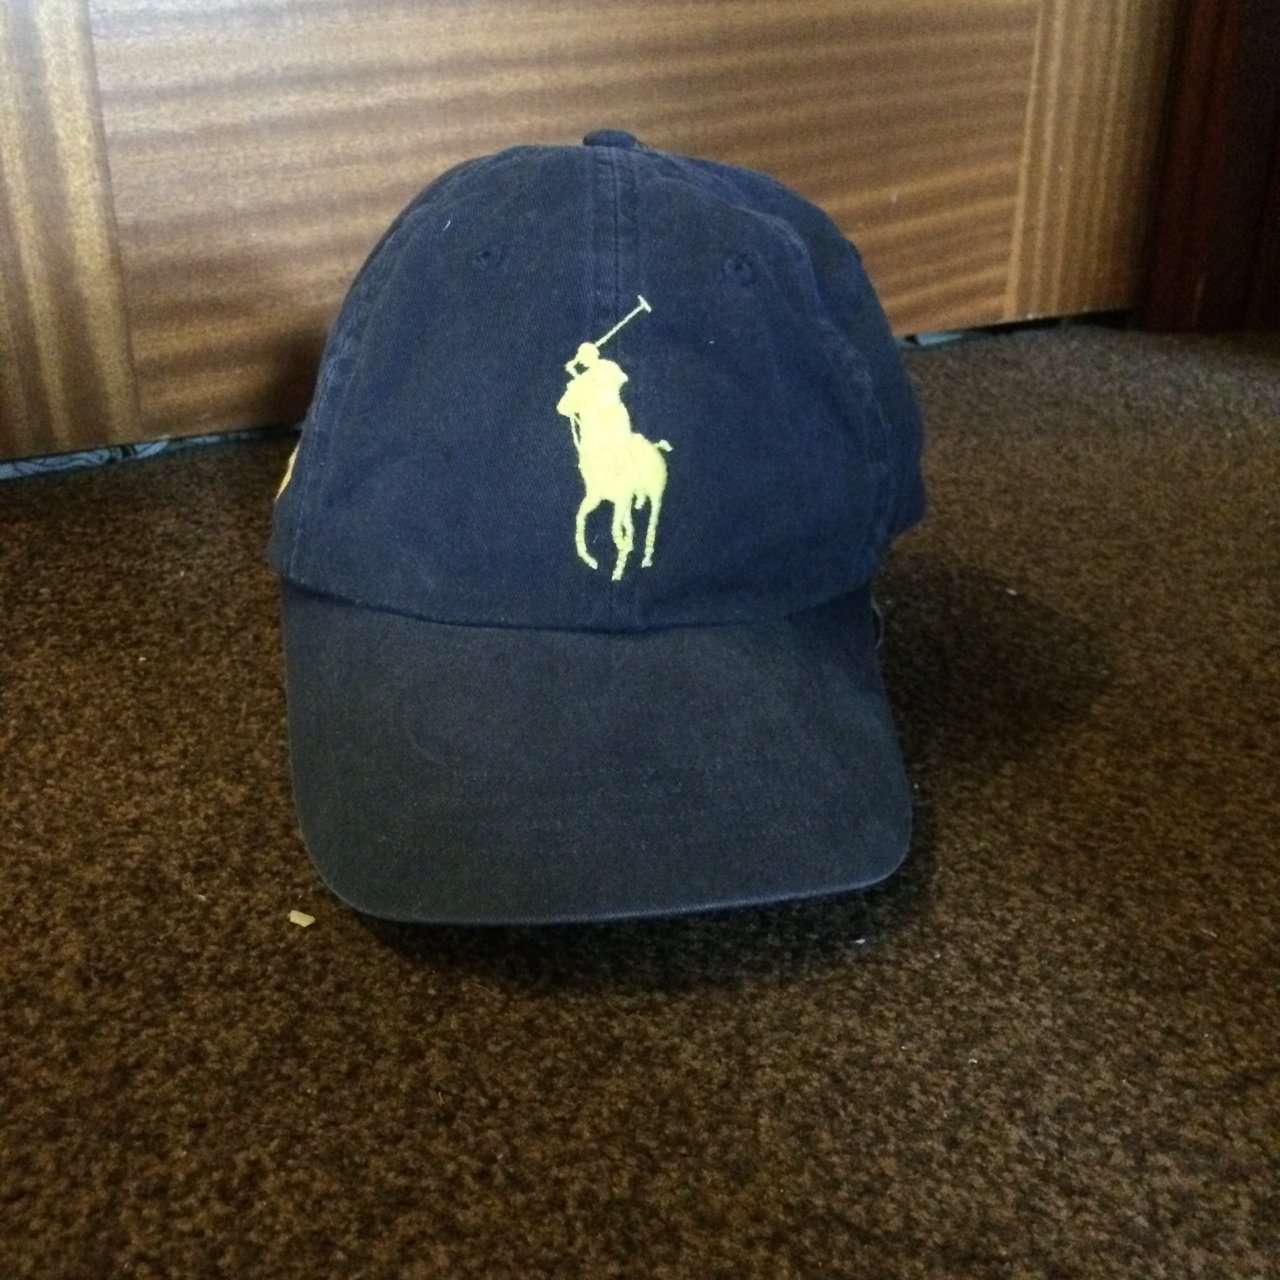 Polo Ralph Lauren adjustable hat. One size fits all. - Depop a172c7b6182